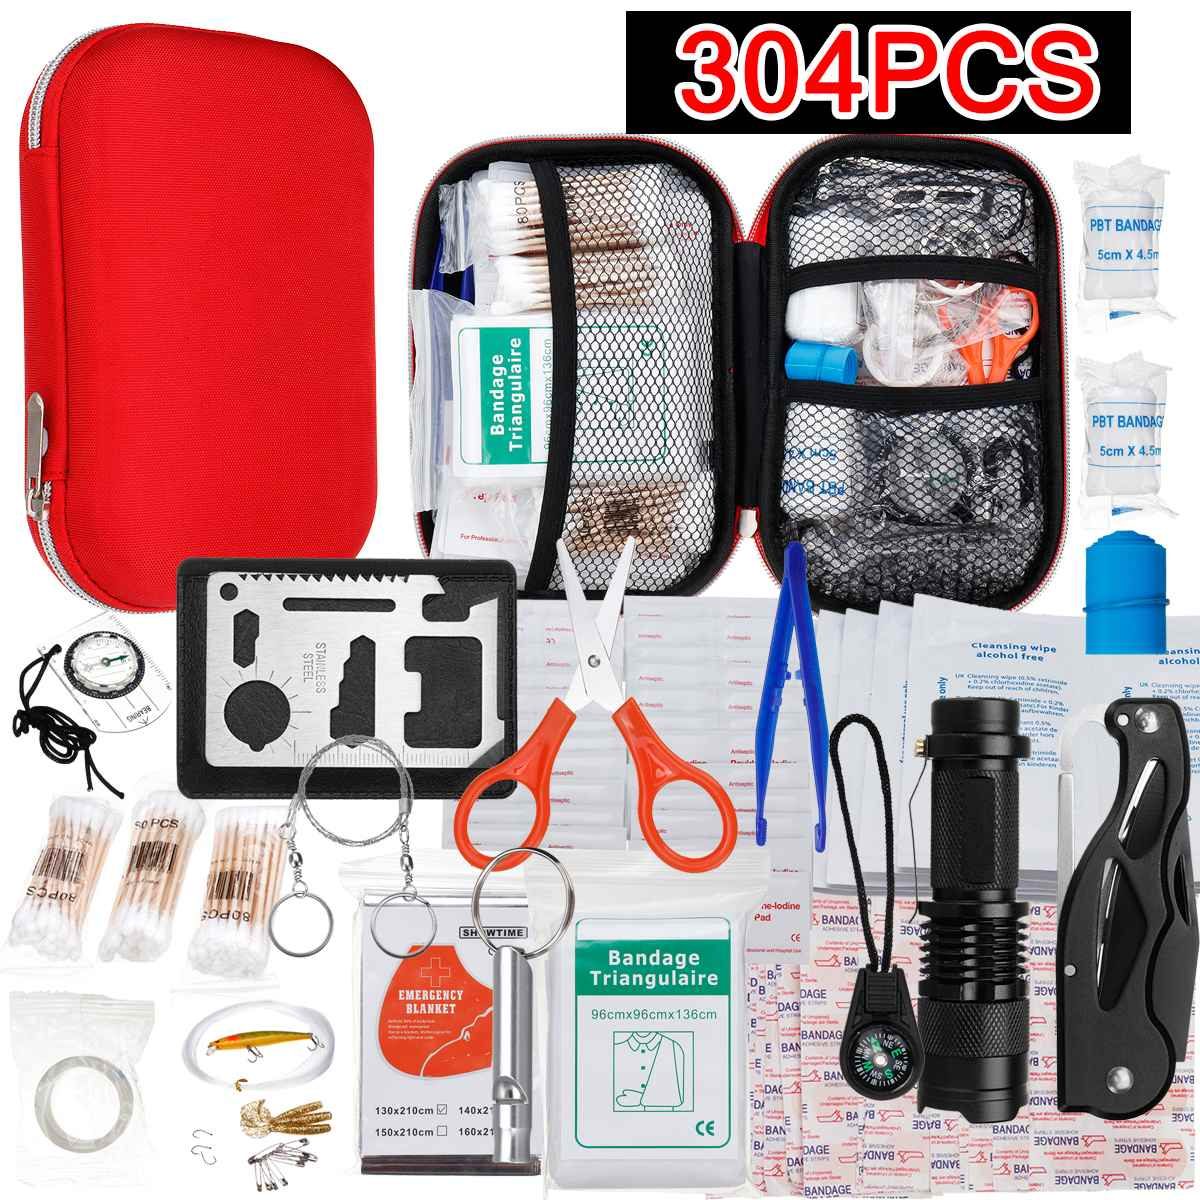 145/261/304 Pcs First Aid Bag Kit Camping Hiking Car Portable Outdoor Medical Emergency Kit Treatment Pack Survival Rescue Box